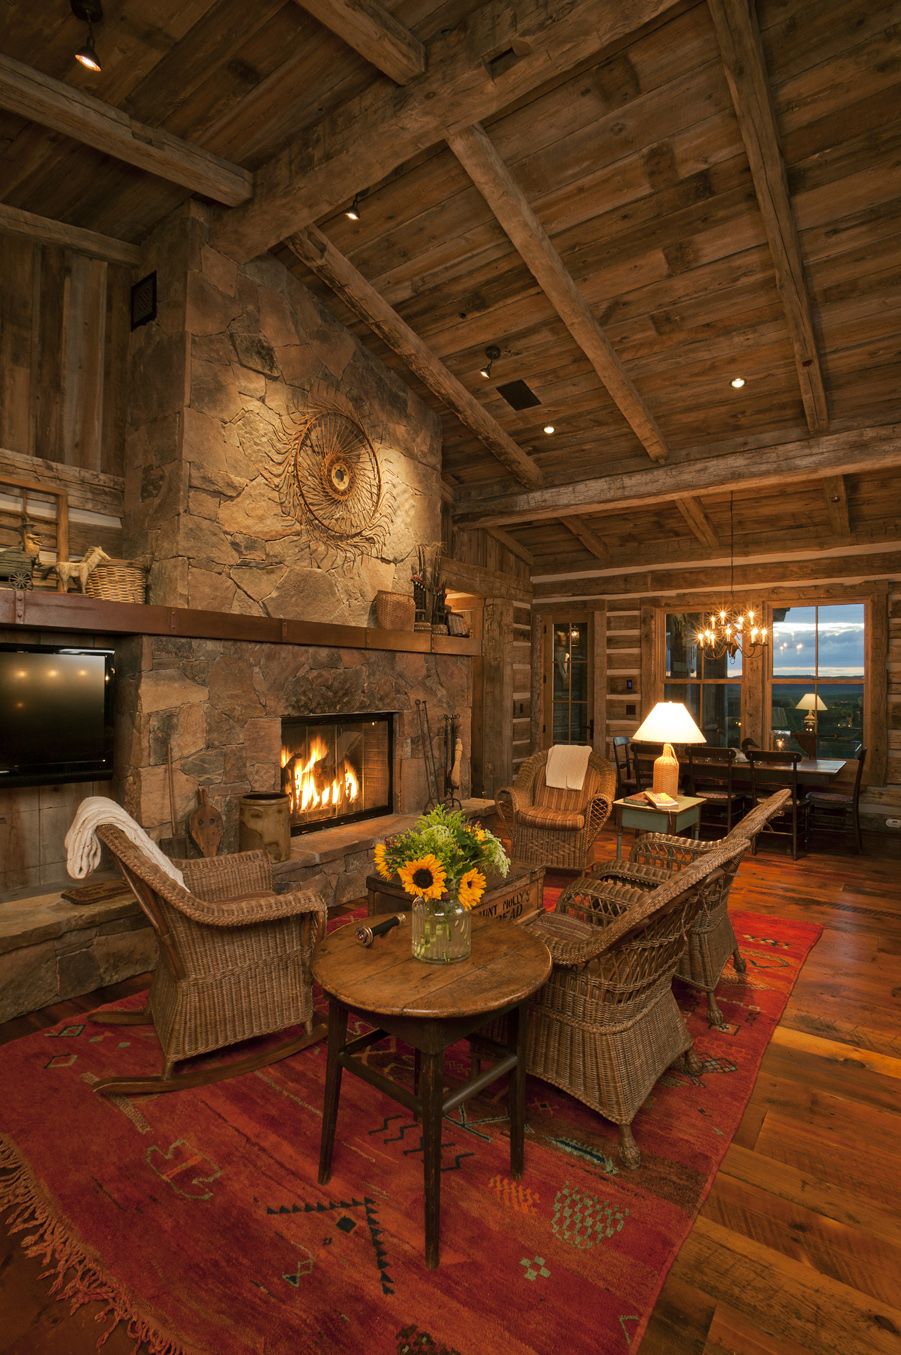 Home on the RangeDesigning for the Western Lifestyle: Interior